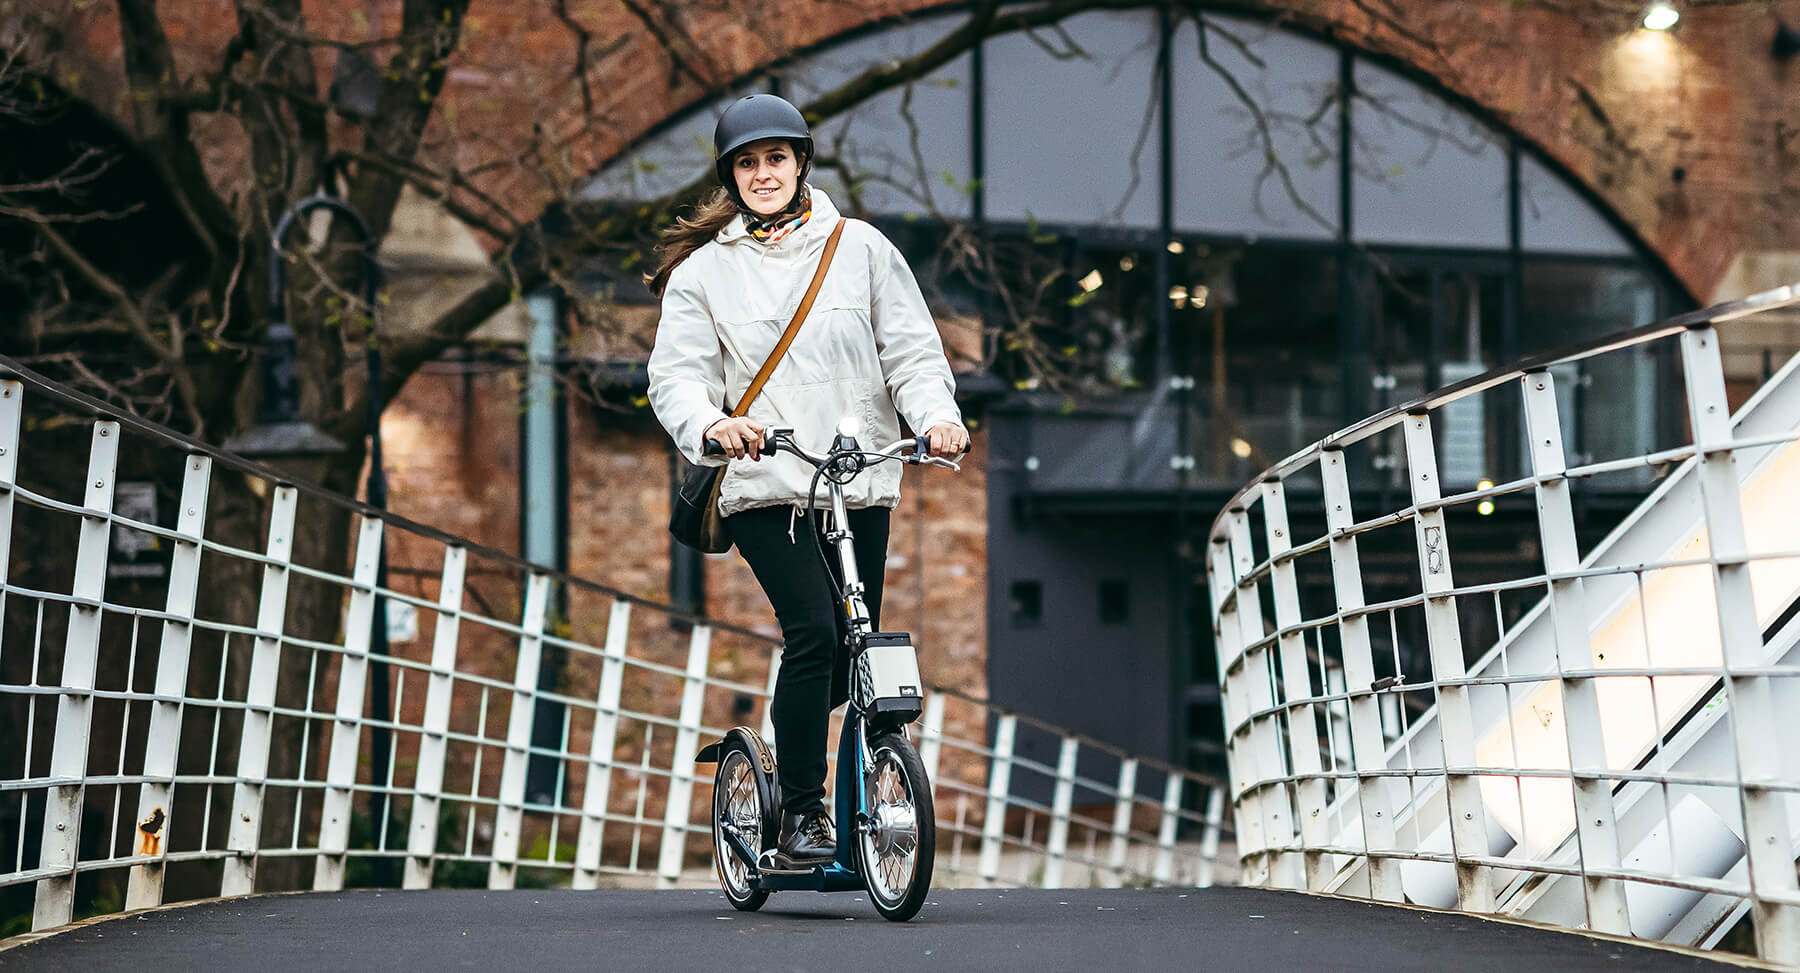 electric scooter 150kg max weight uk, electric scooter for heavy adults uk